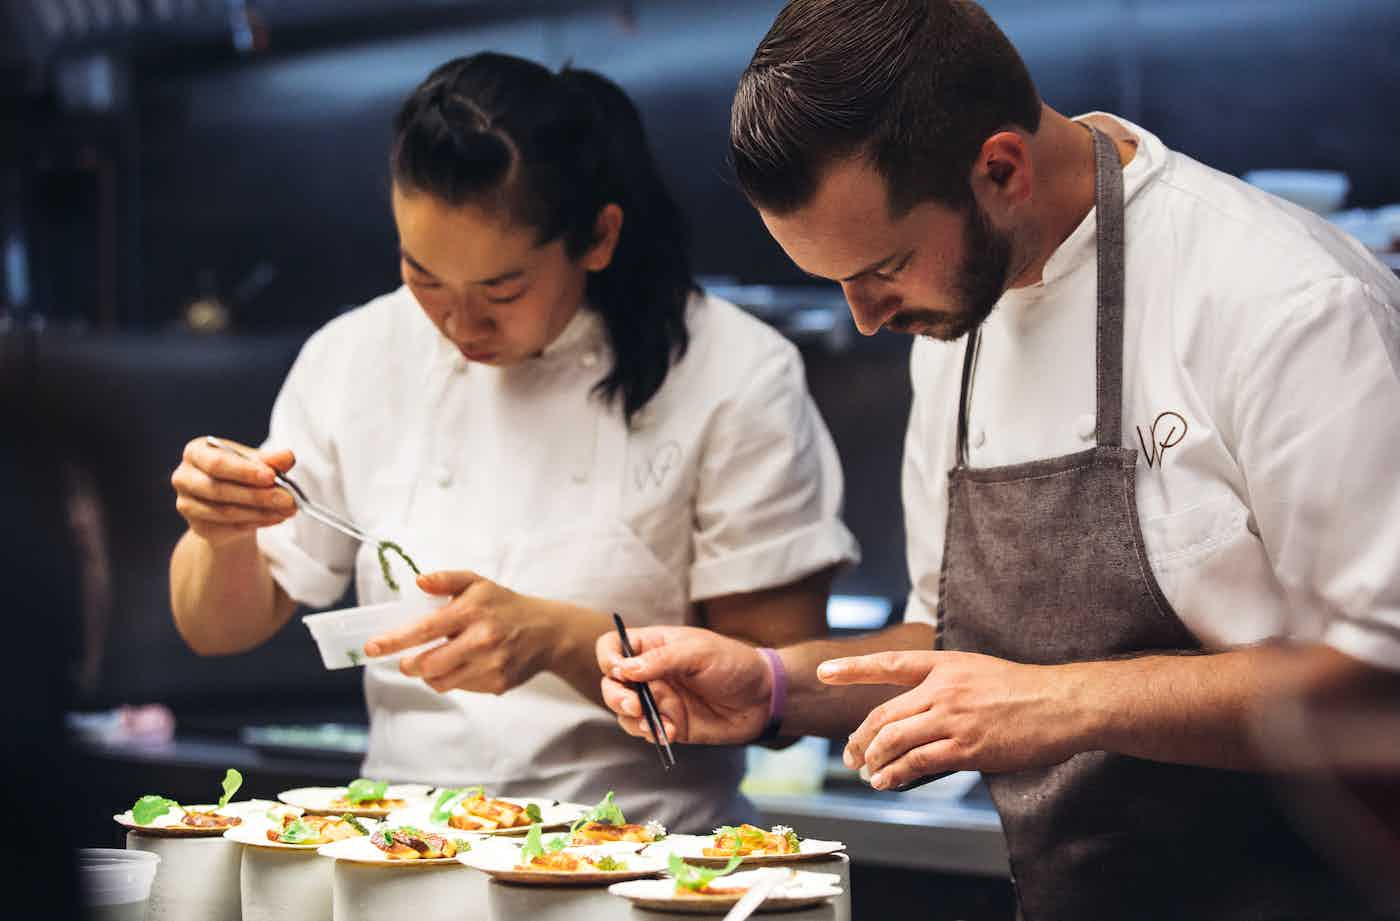 Two chefs plating dishes